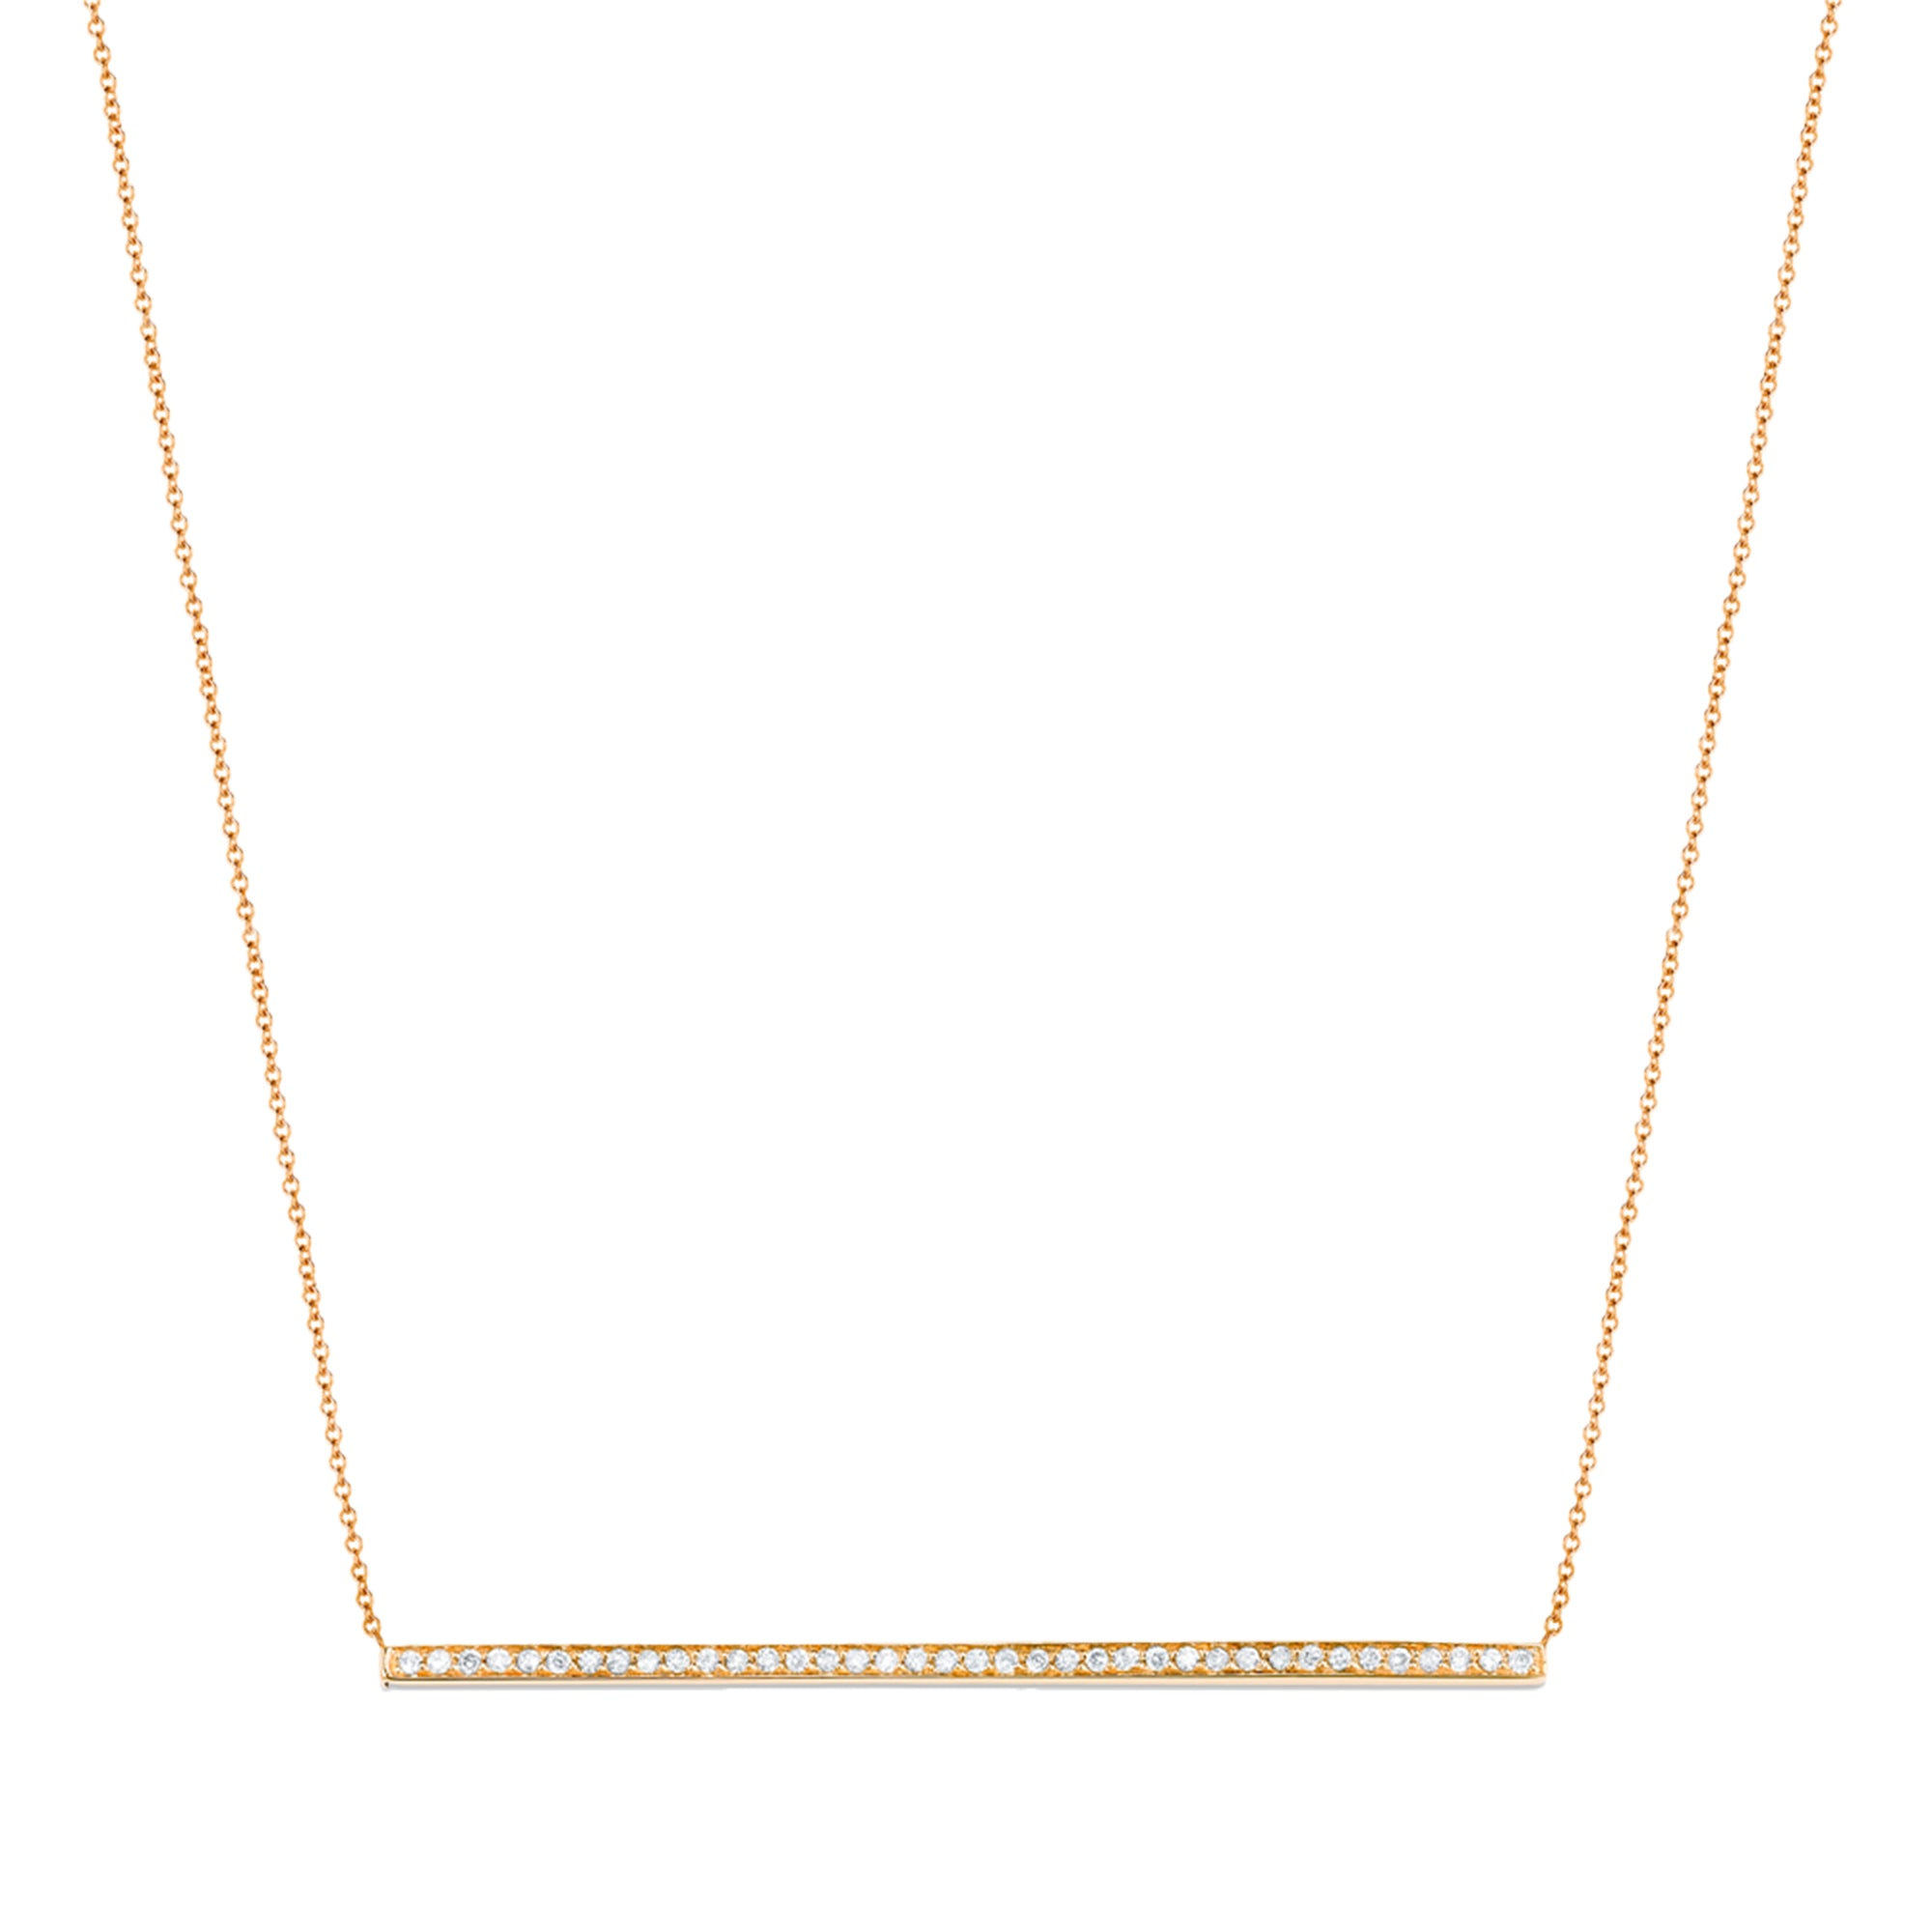 Gold & White Diamond Side Bar Necklace by Carbon & Hyde for Broken English Jewelry